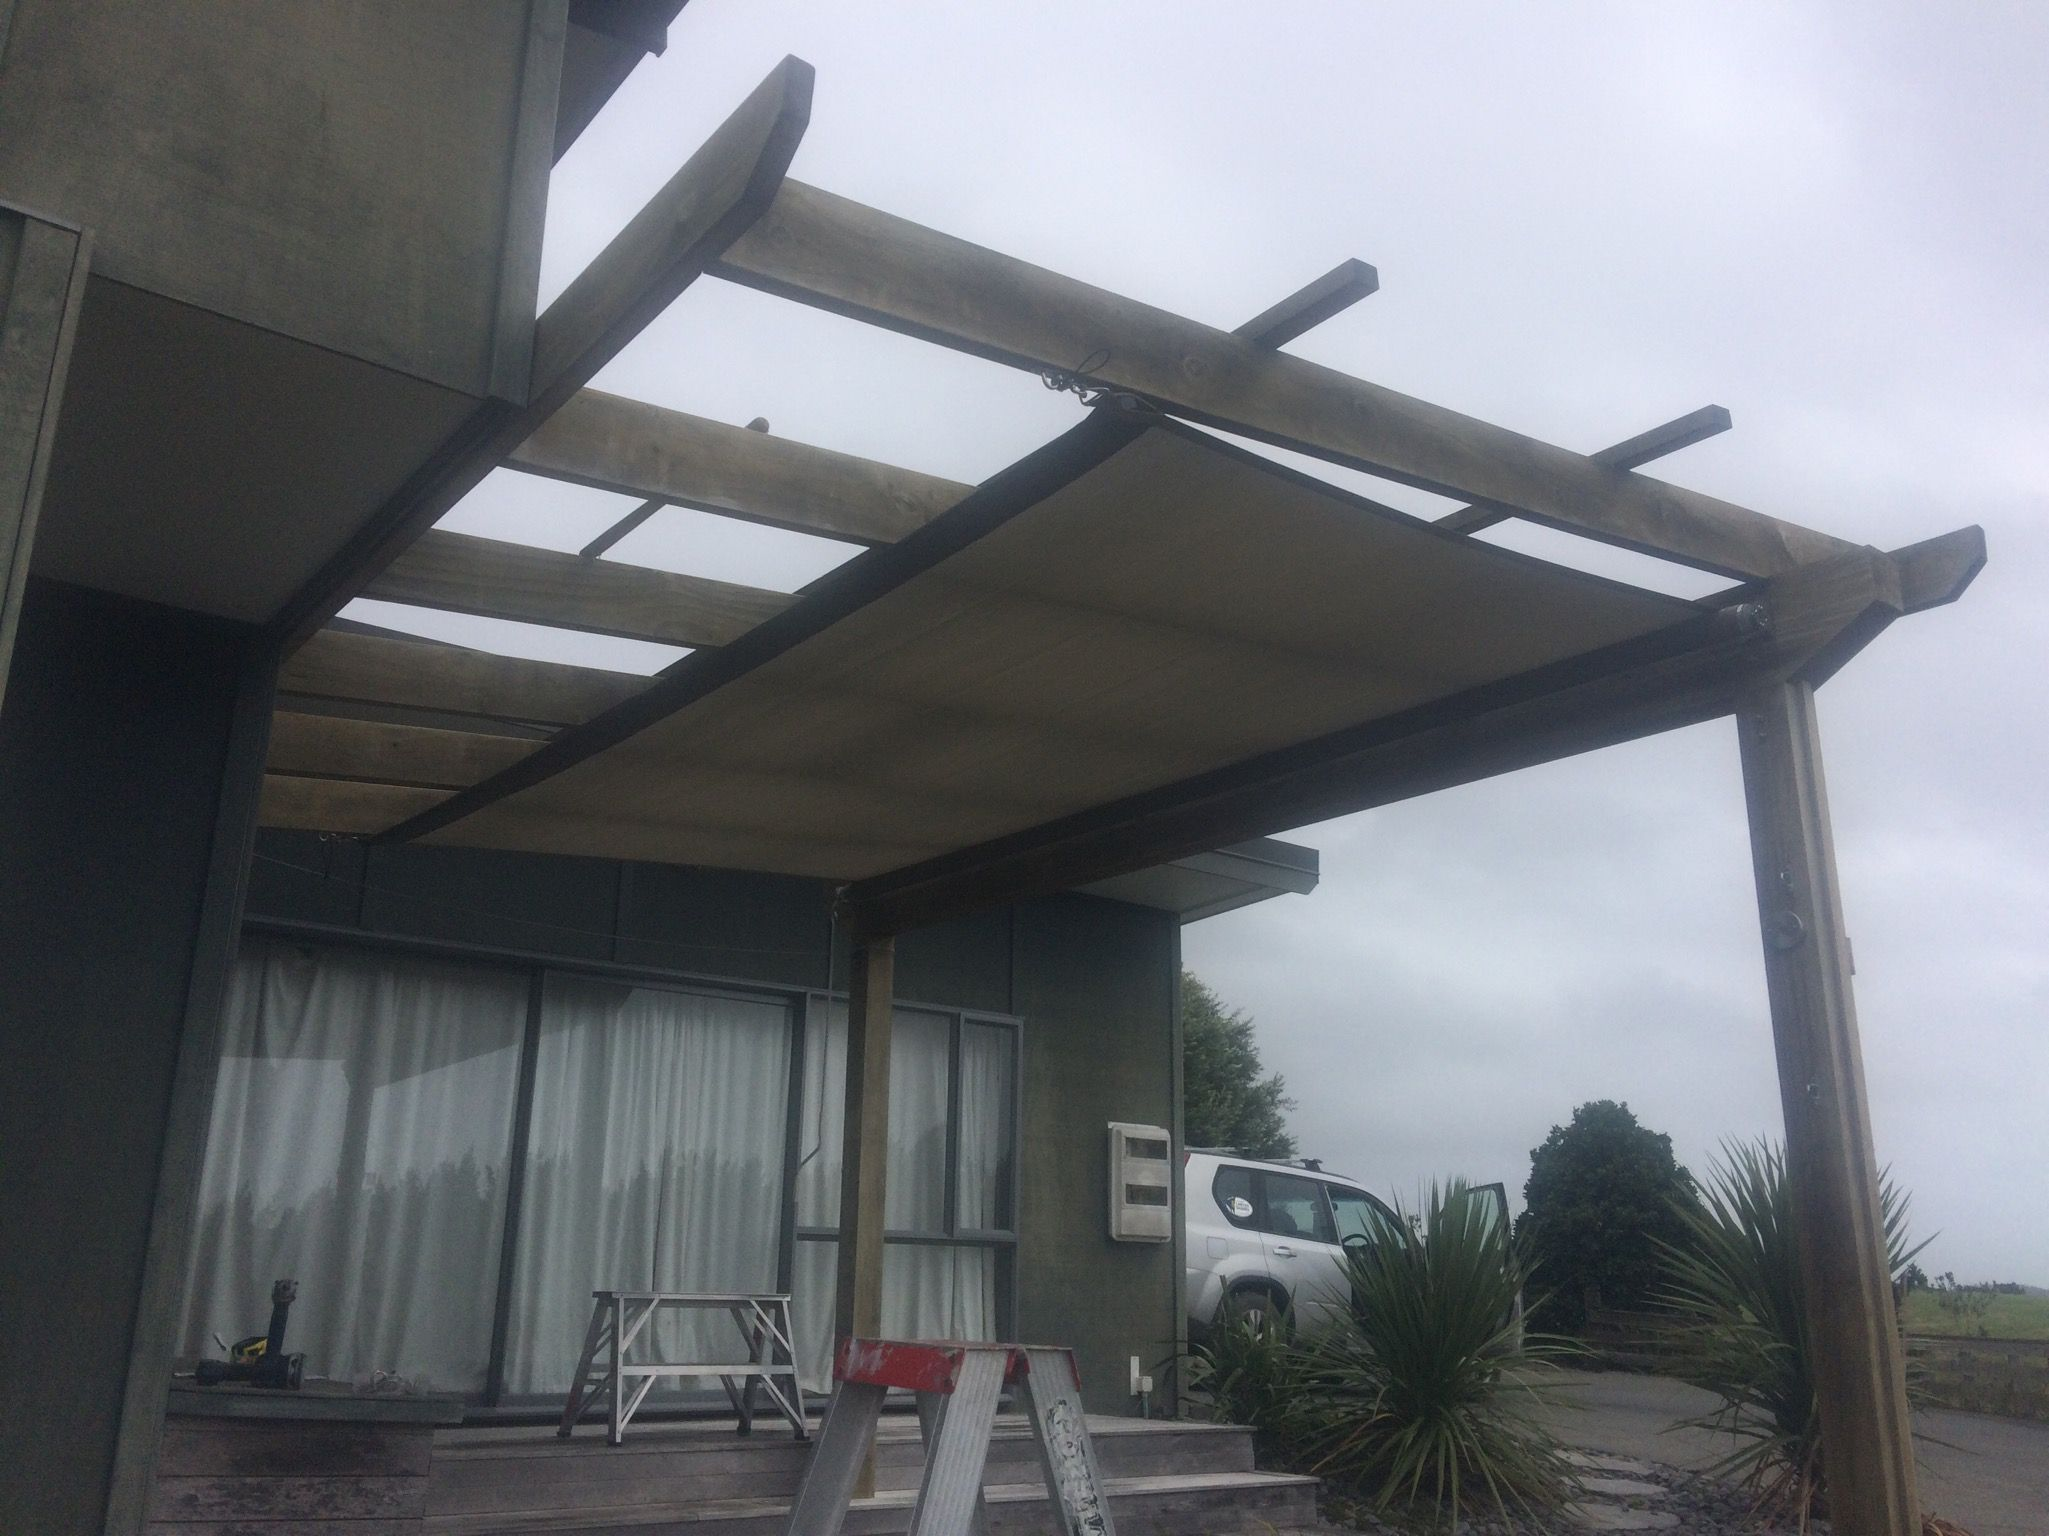 ltd solutions and from durable making both duty pvc constructed awnings heavy shade strong that sails is sun residential waterproof awning